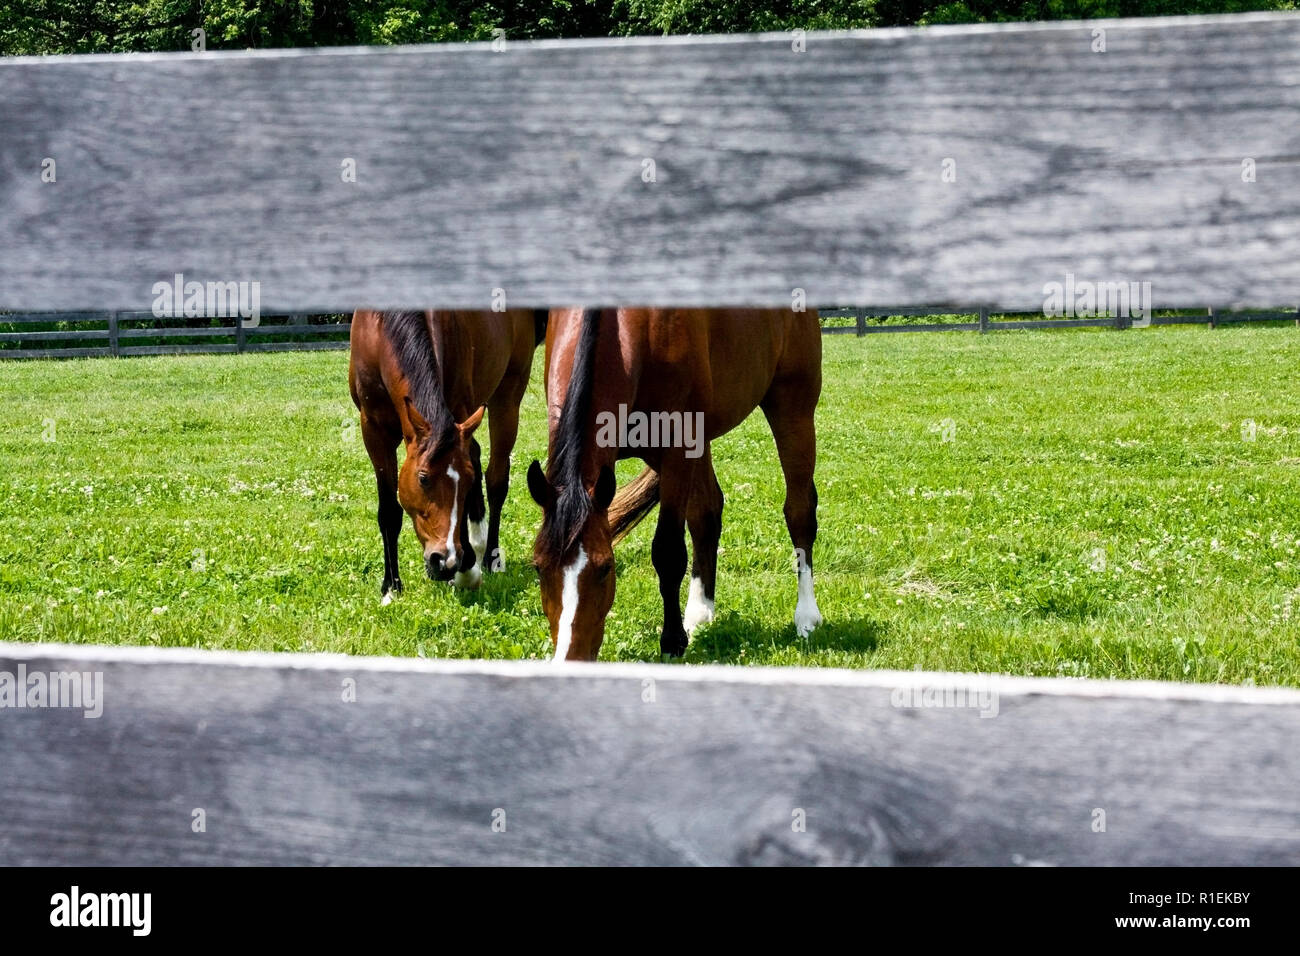 Horse farm with long wooden split-rail fences and horses seeking relief from sun on hot day. - Stock Image